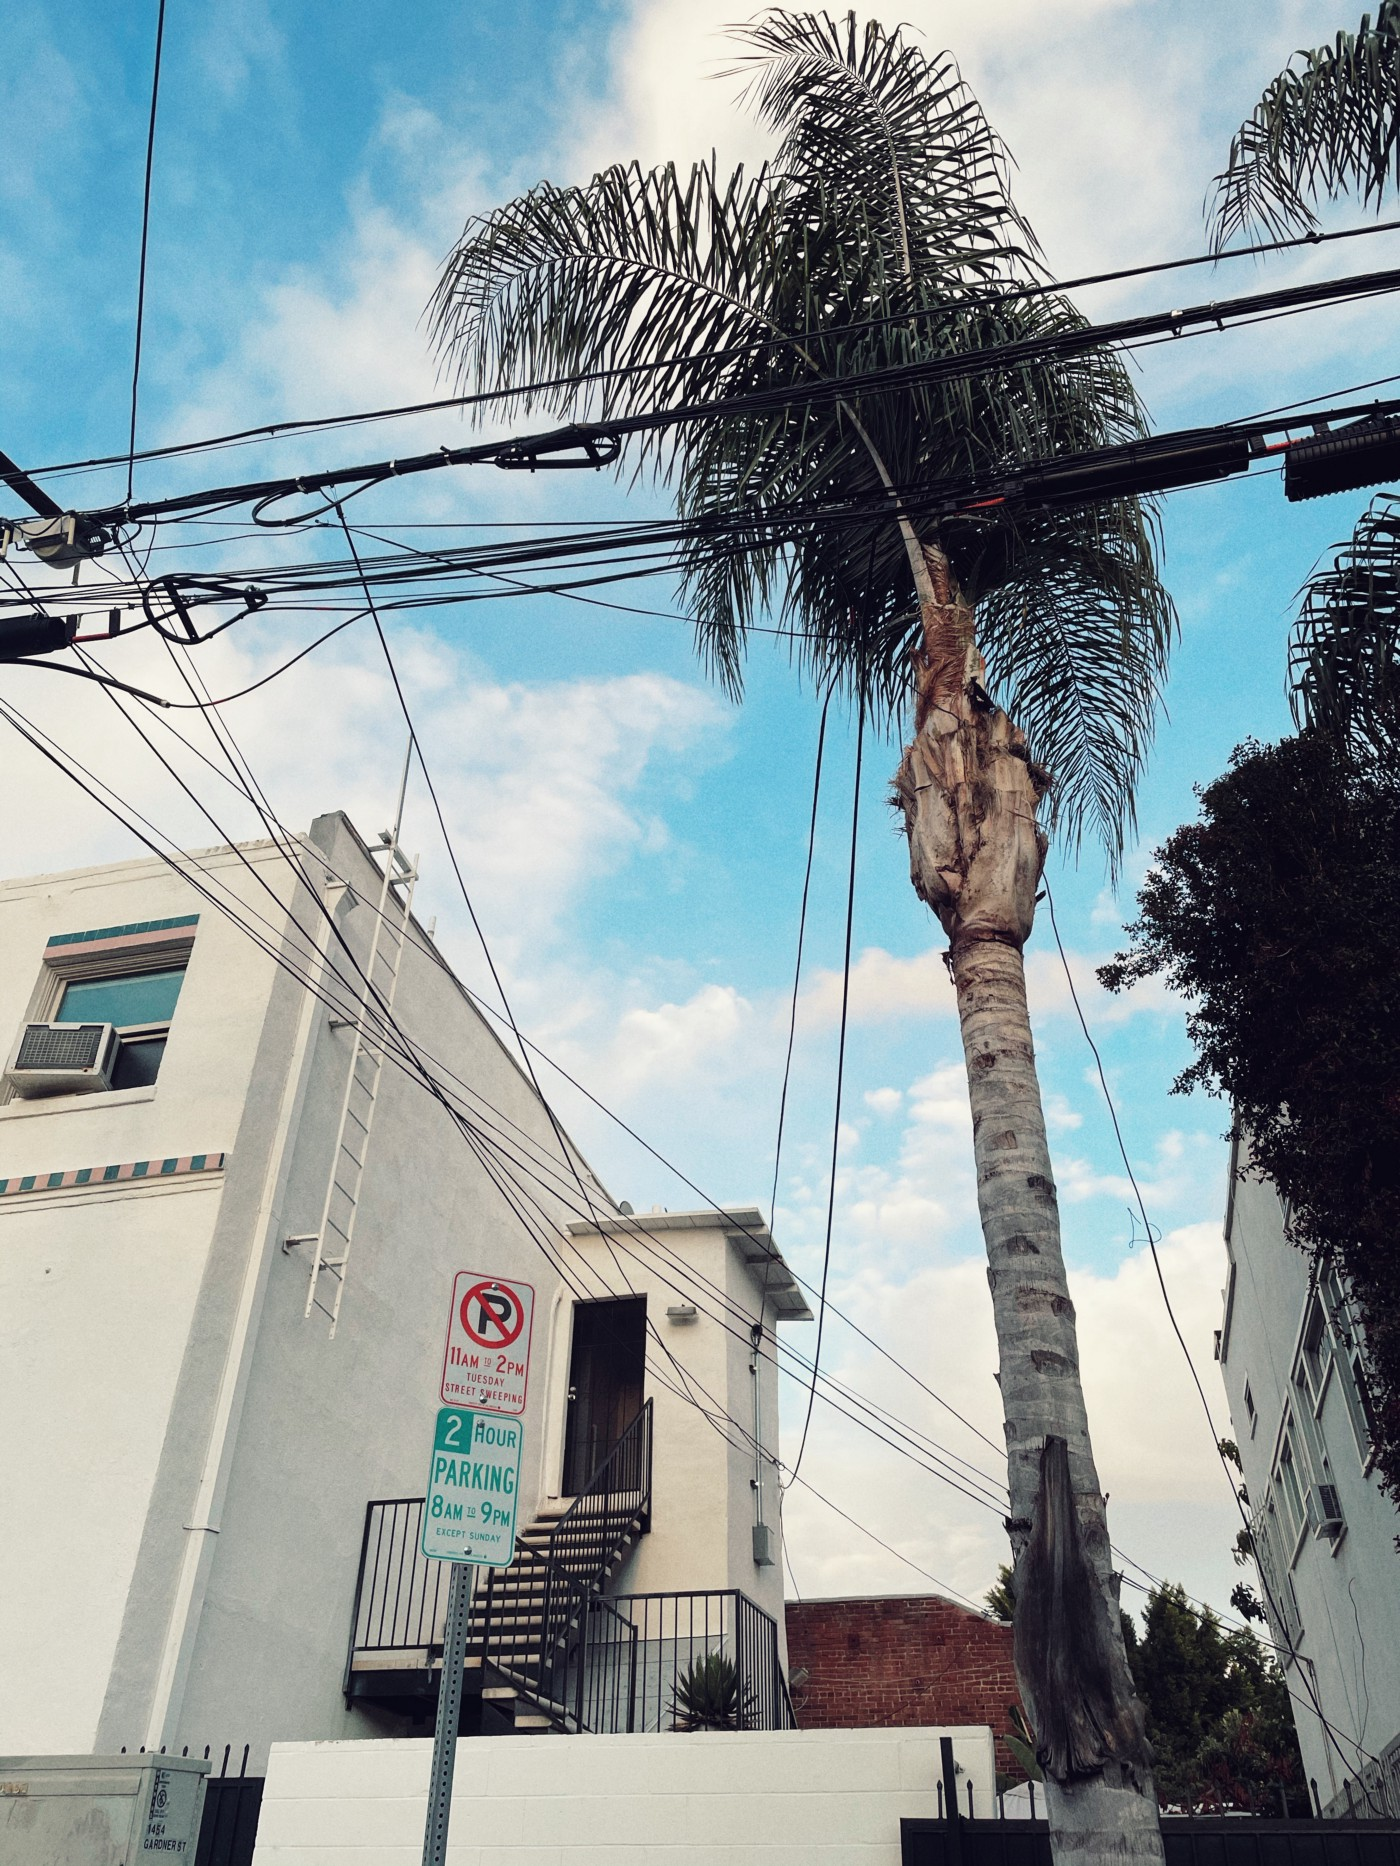 Electric wires, a palm tree, white walls and fire escape of a Los Angeles apartment building, a street parking sign shot against a blue sky with partial clouds.